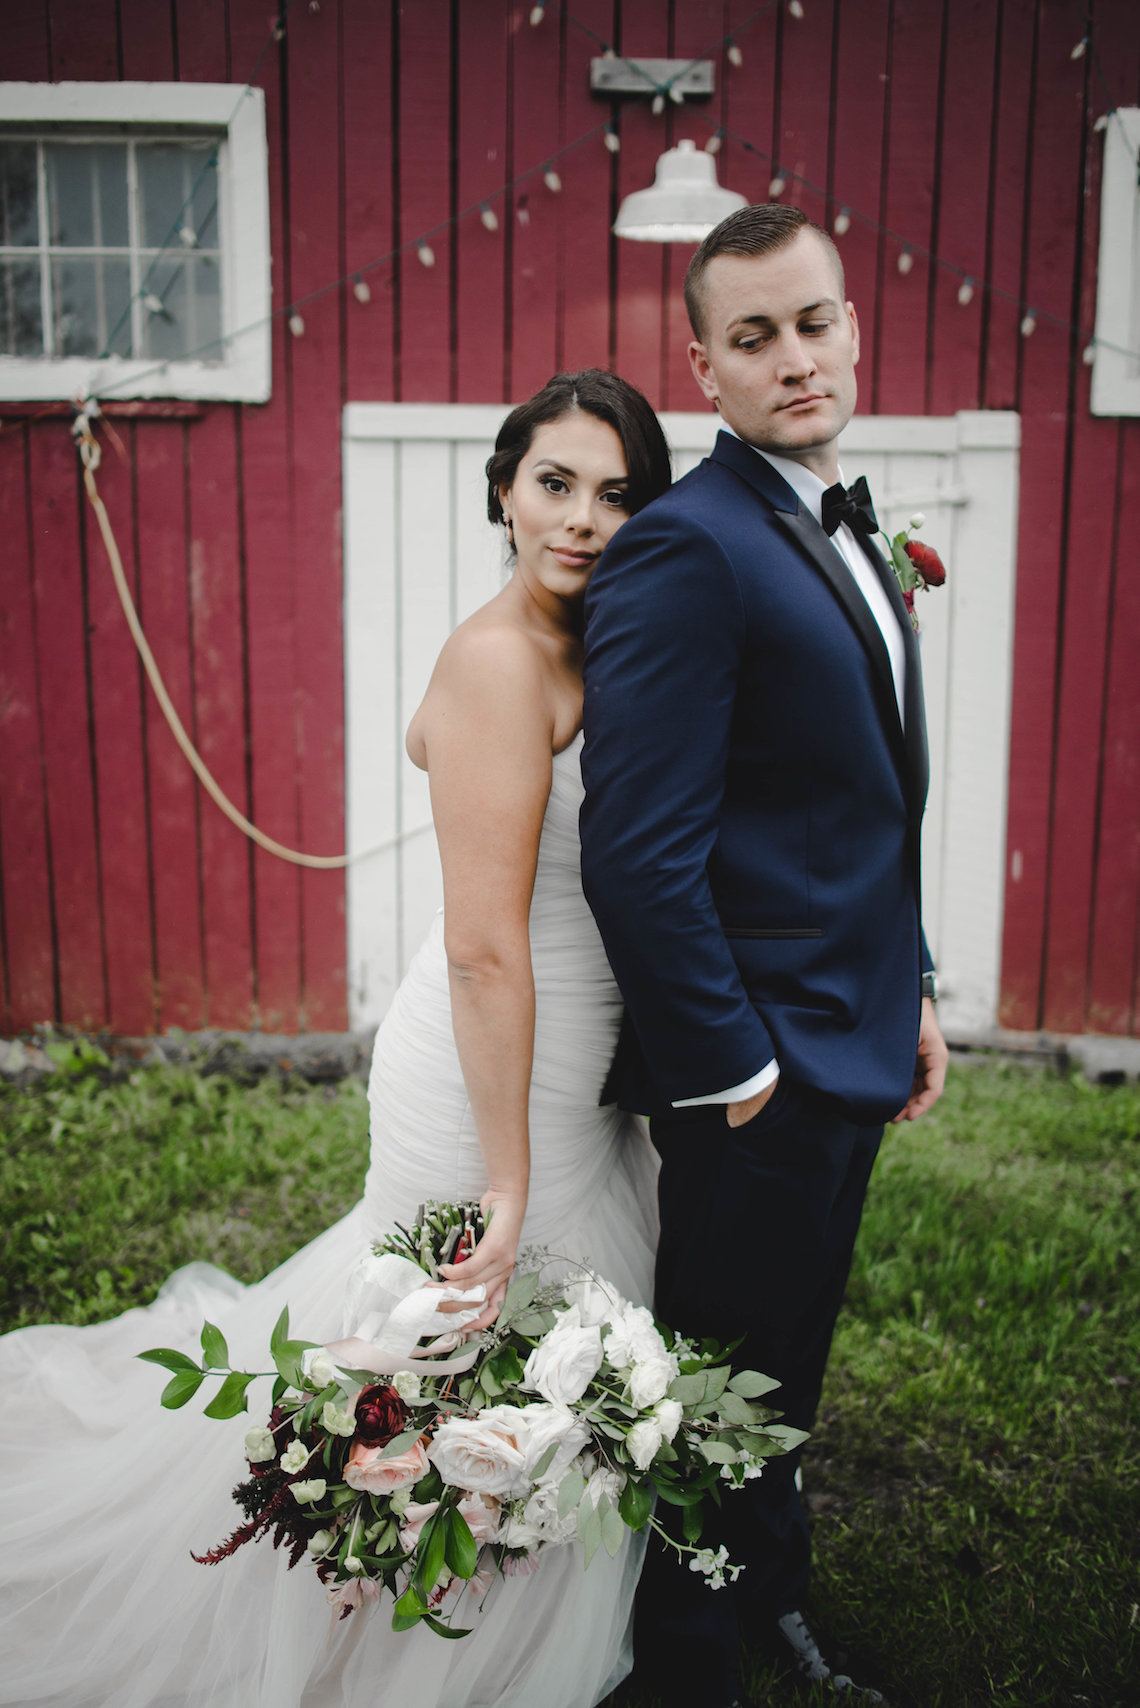 Romance In The Rain; Rustic Barn Wedding Ideas With Dramatic Florals | Flor de Casa Designs 4